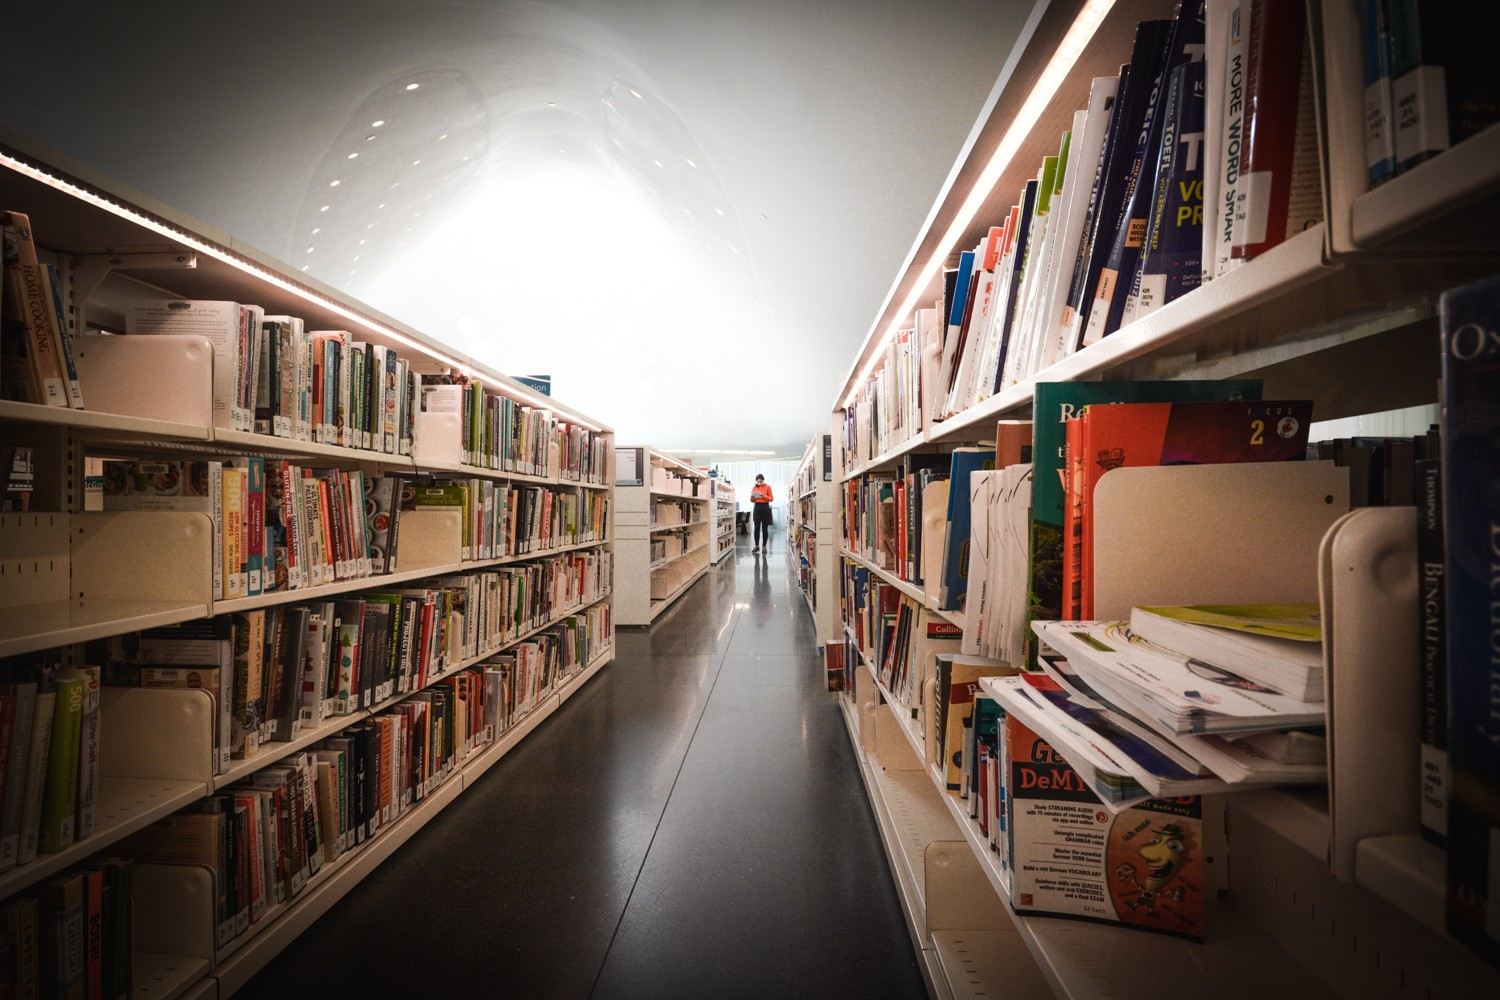 As the industry faces an uncertain future, Brampton's library system is ahead of the curve